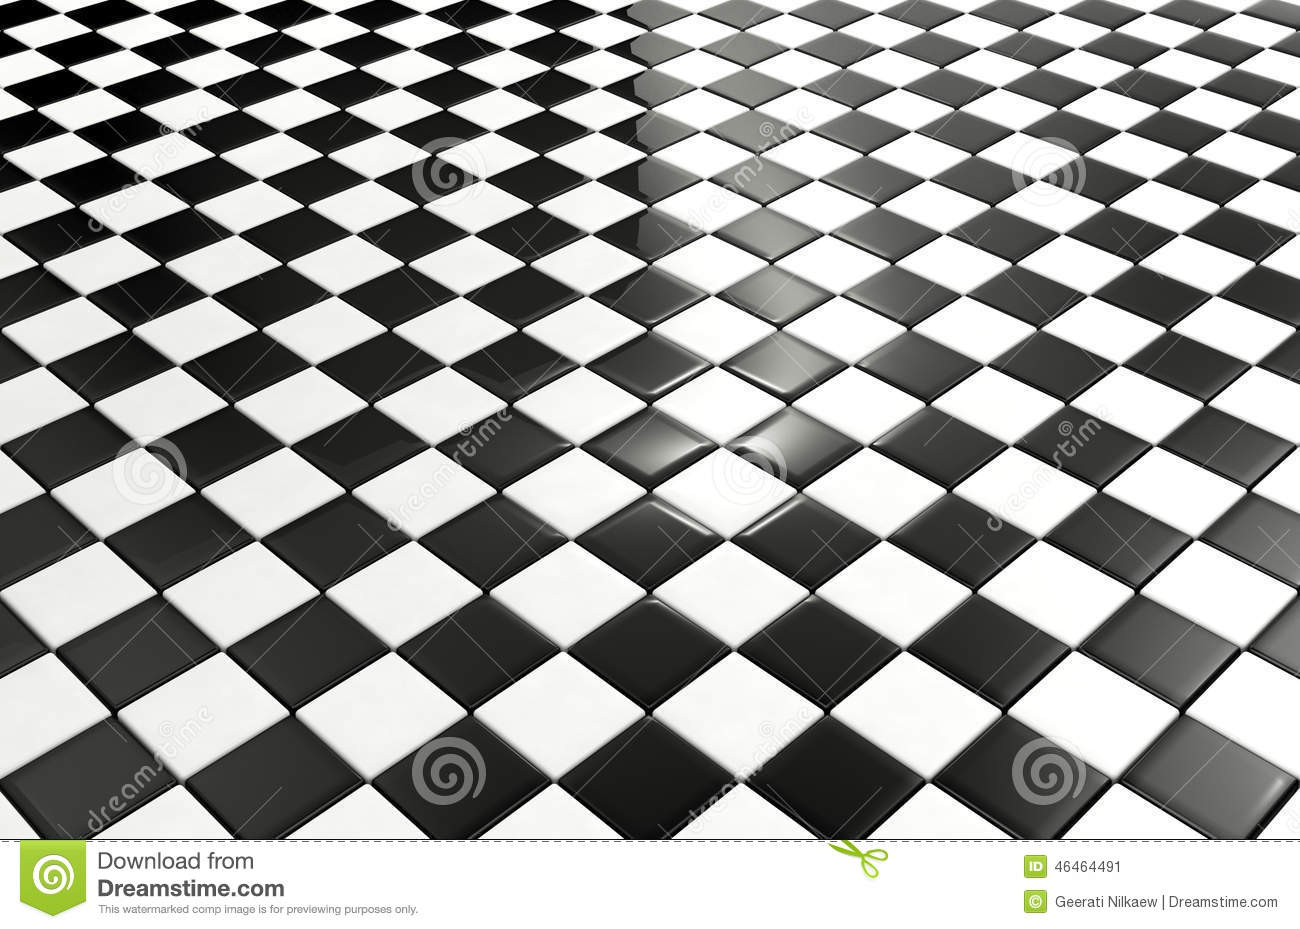 Black and white tiles background stock illustration for Tiles black and white